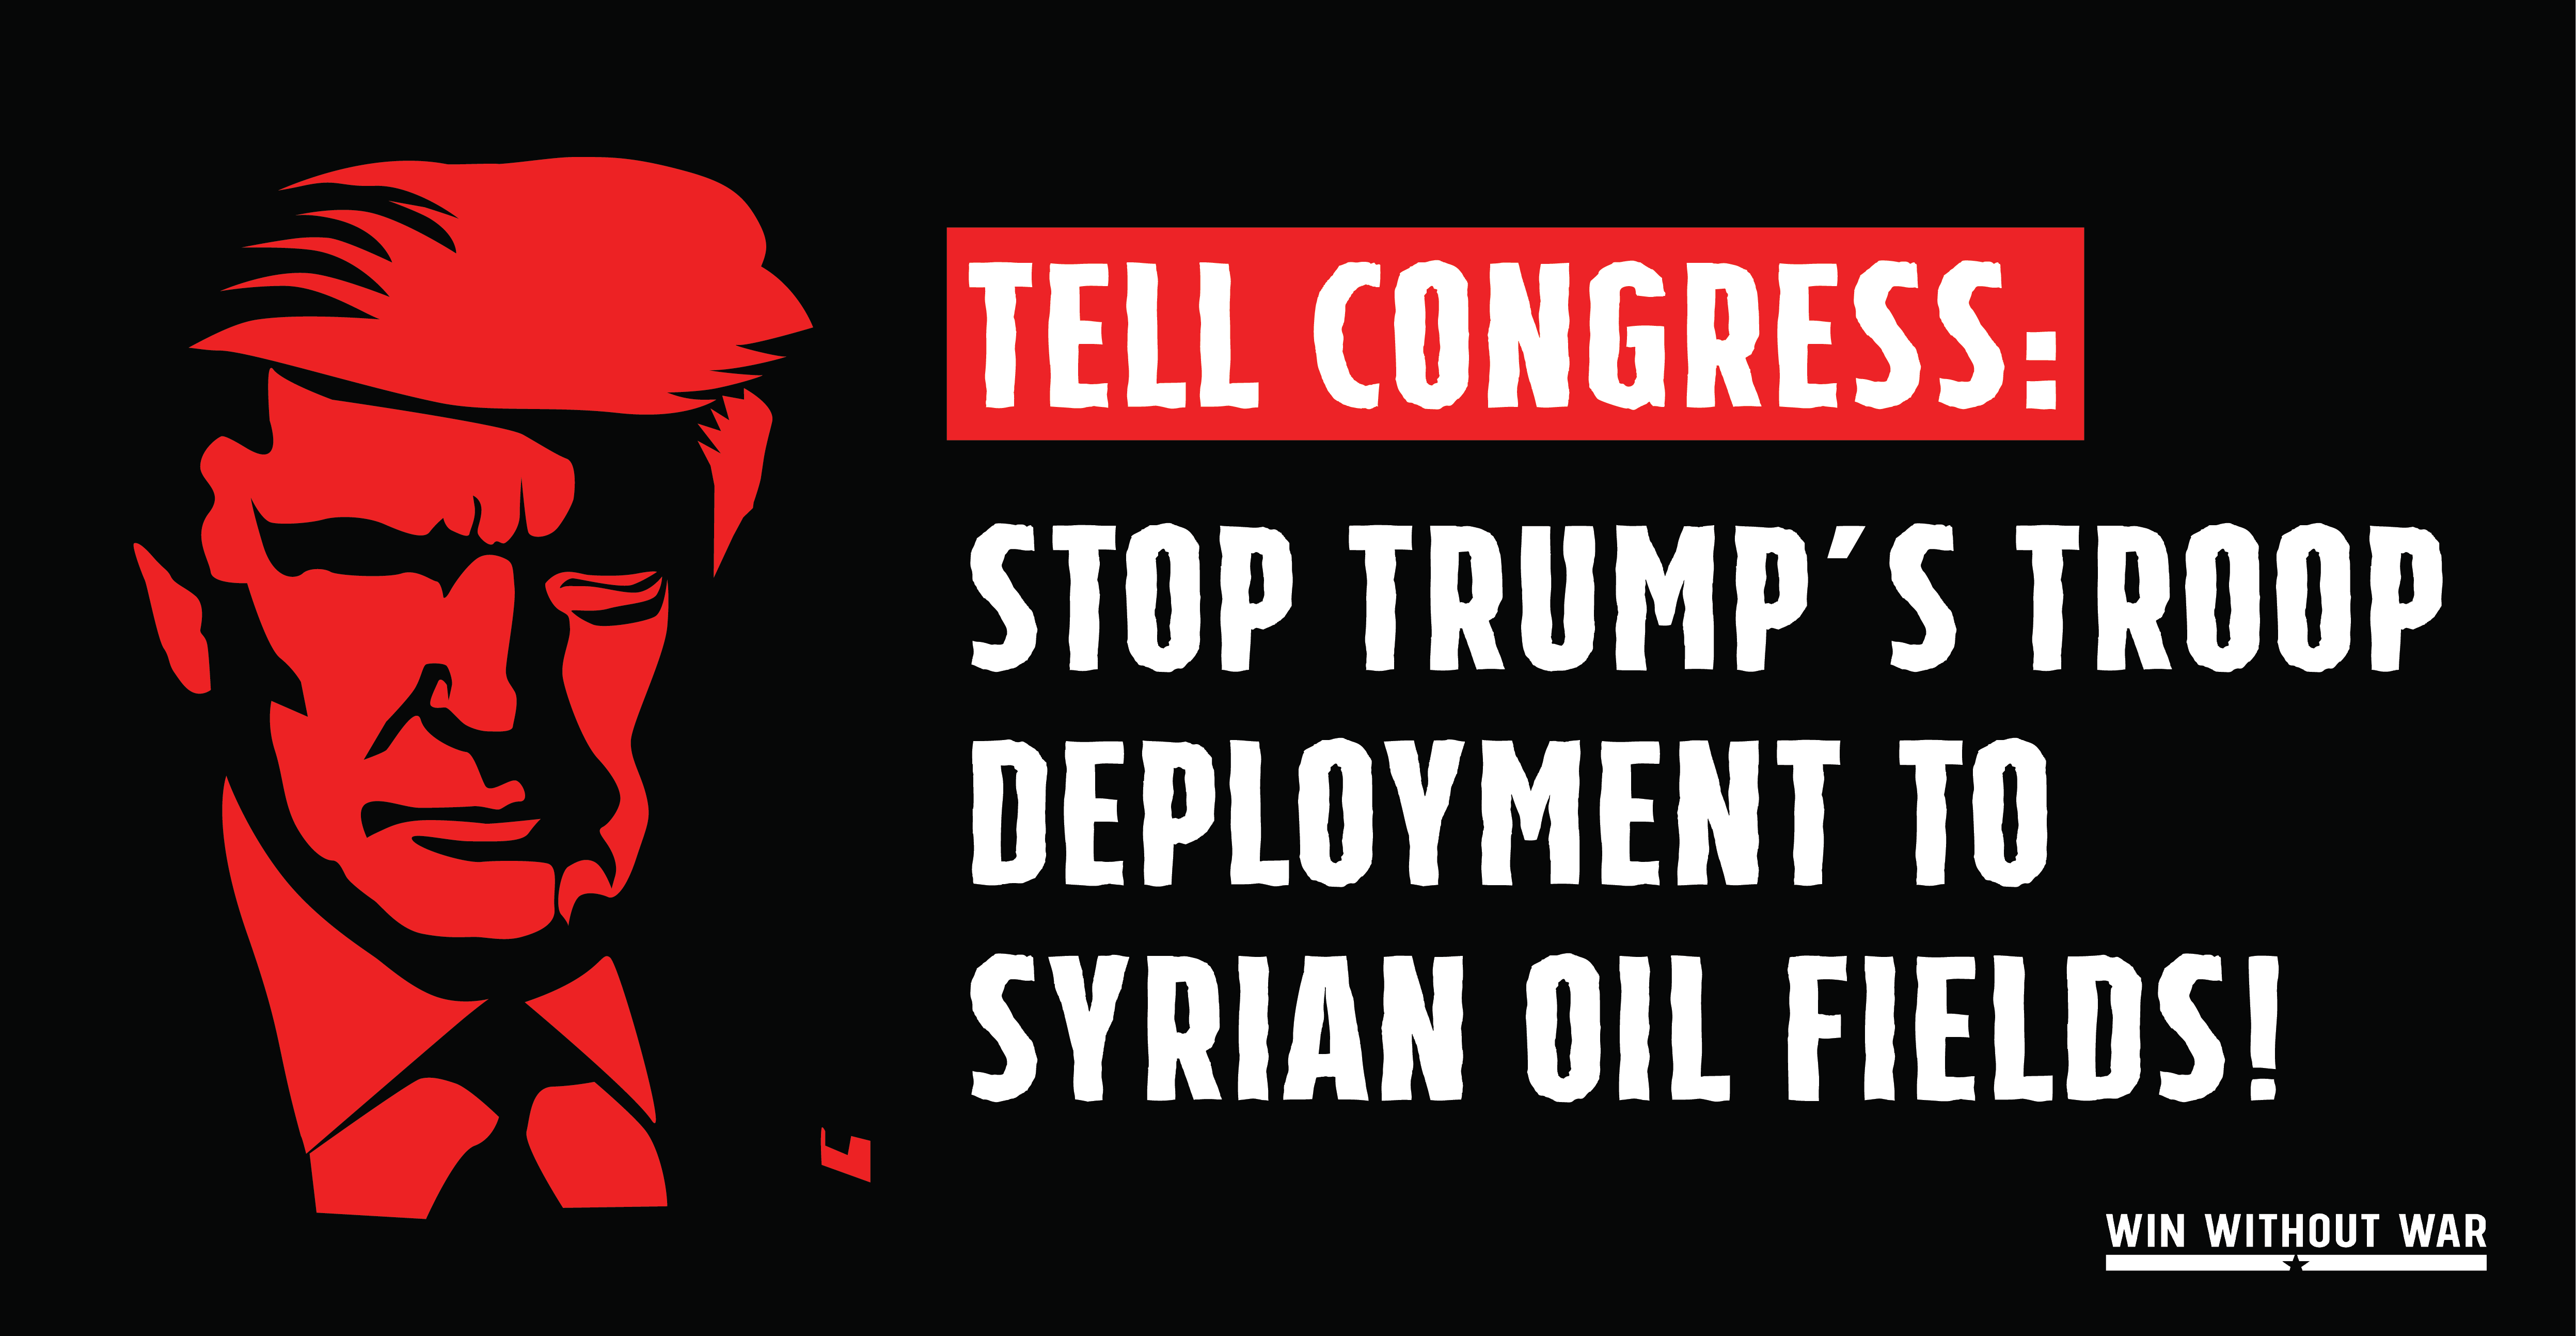 Tell Congress: say NO to Trump's troop deployment to Syrian oil fields!